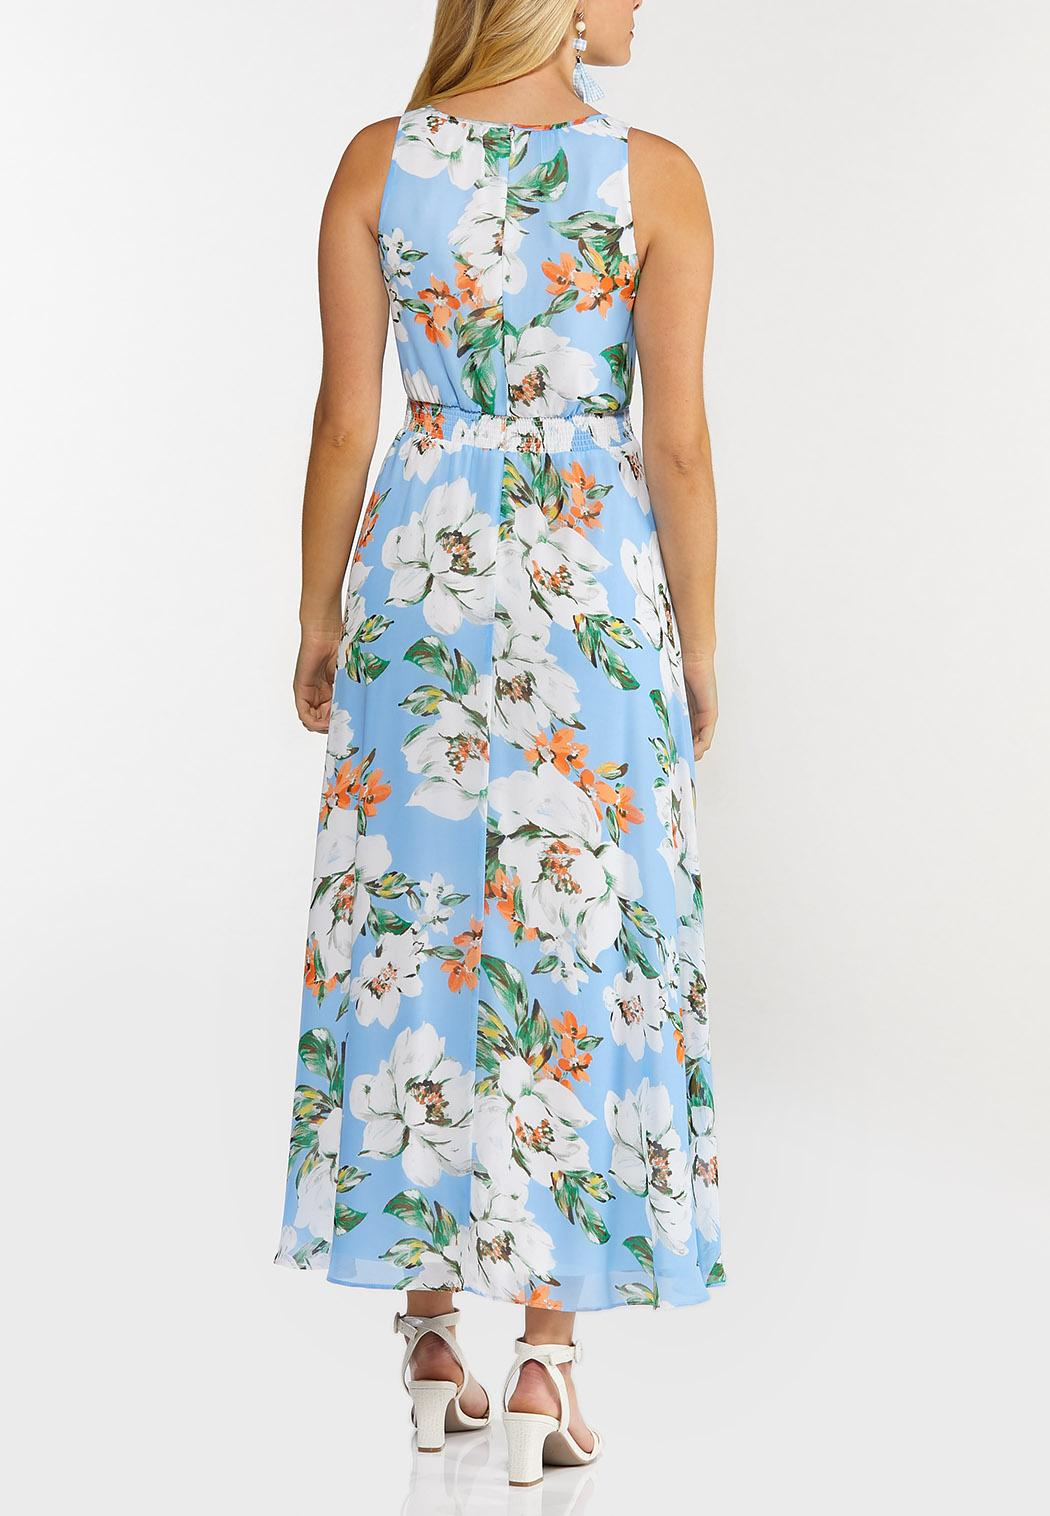 Petite Ruffled Sky Floral Dress (Item #44503840)